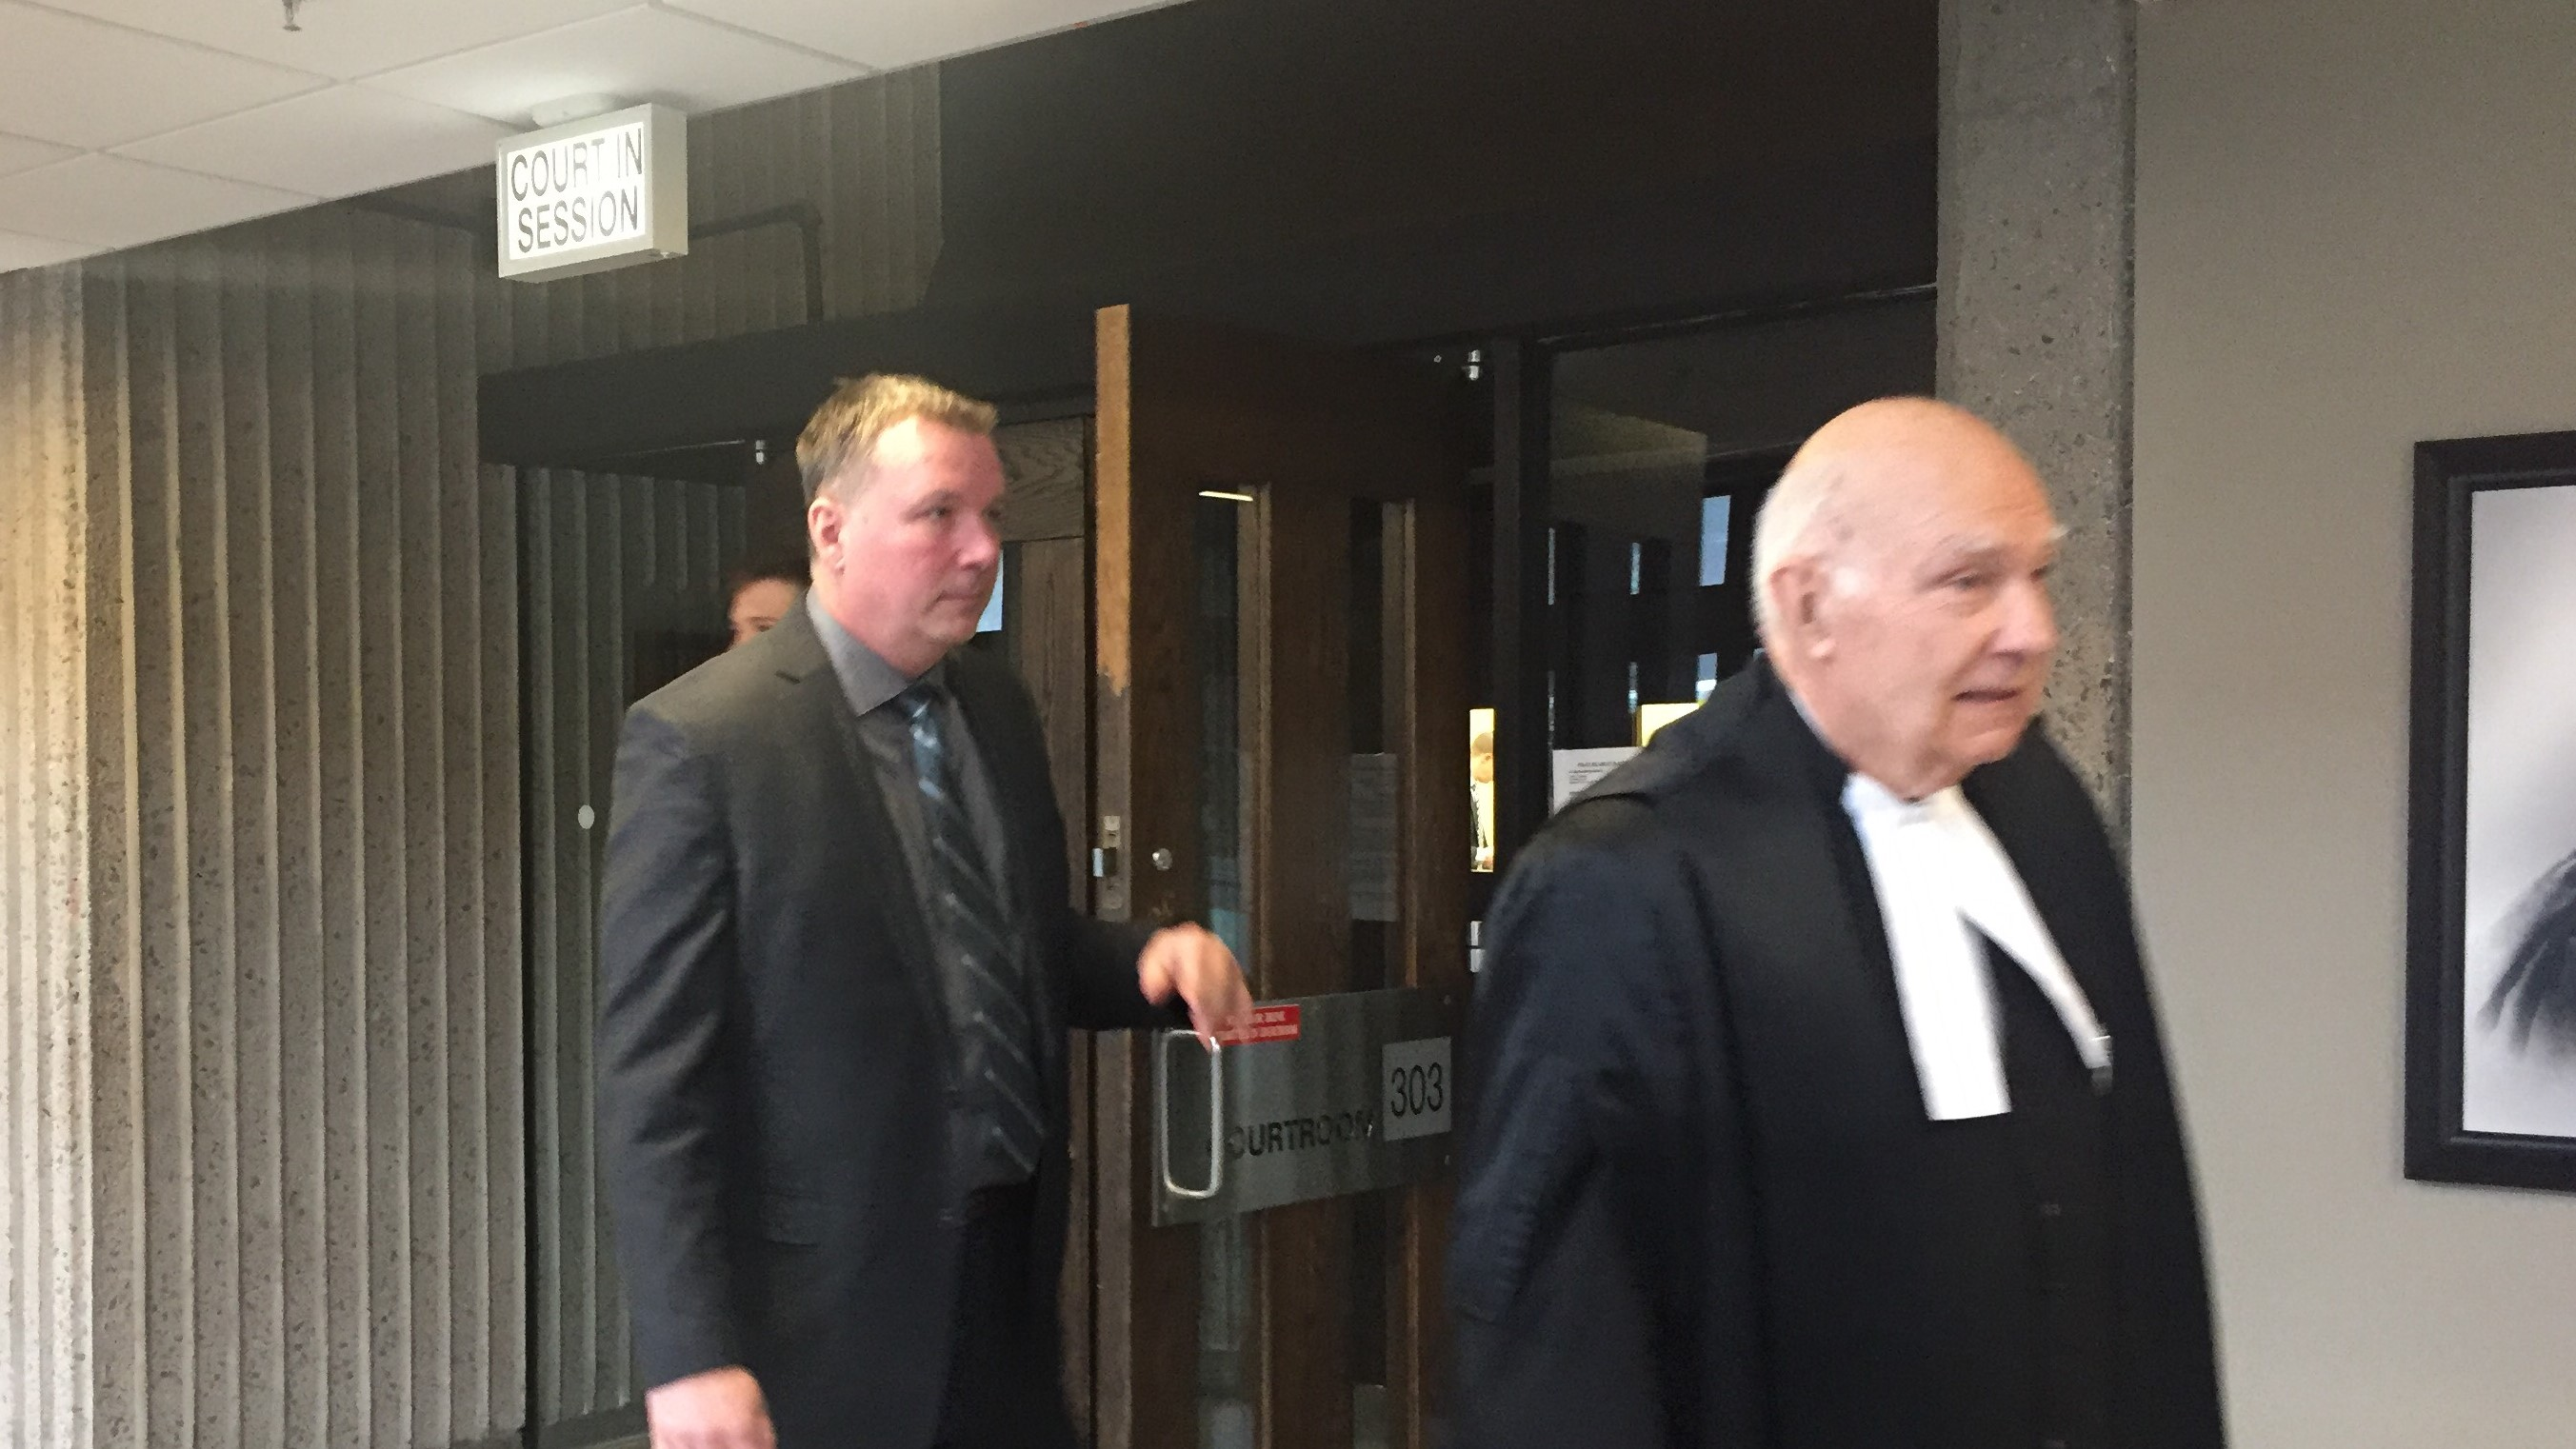 Craig Robert Burnett (left) leaving court room on the fourth day of his trial.